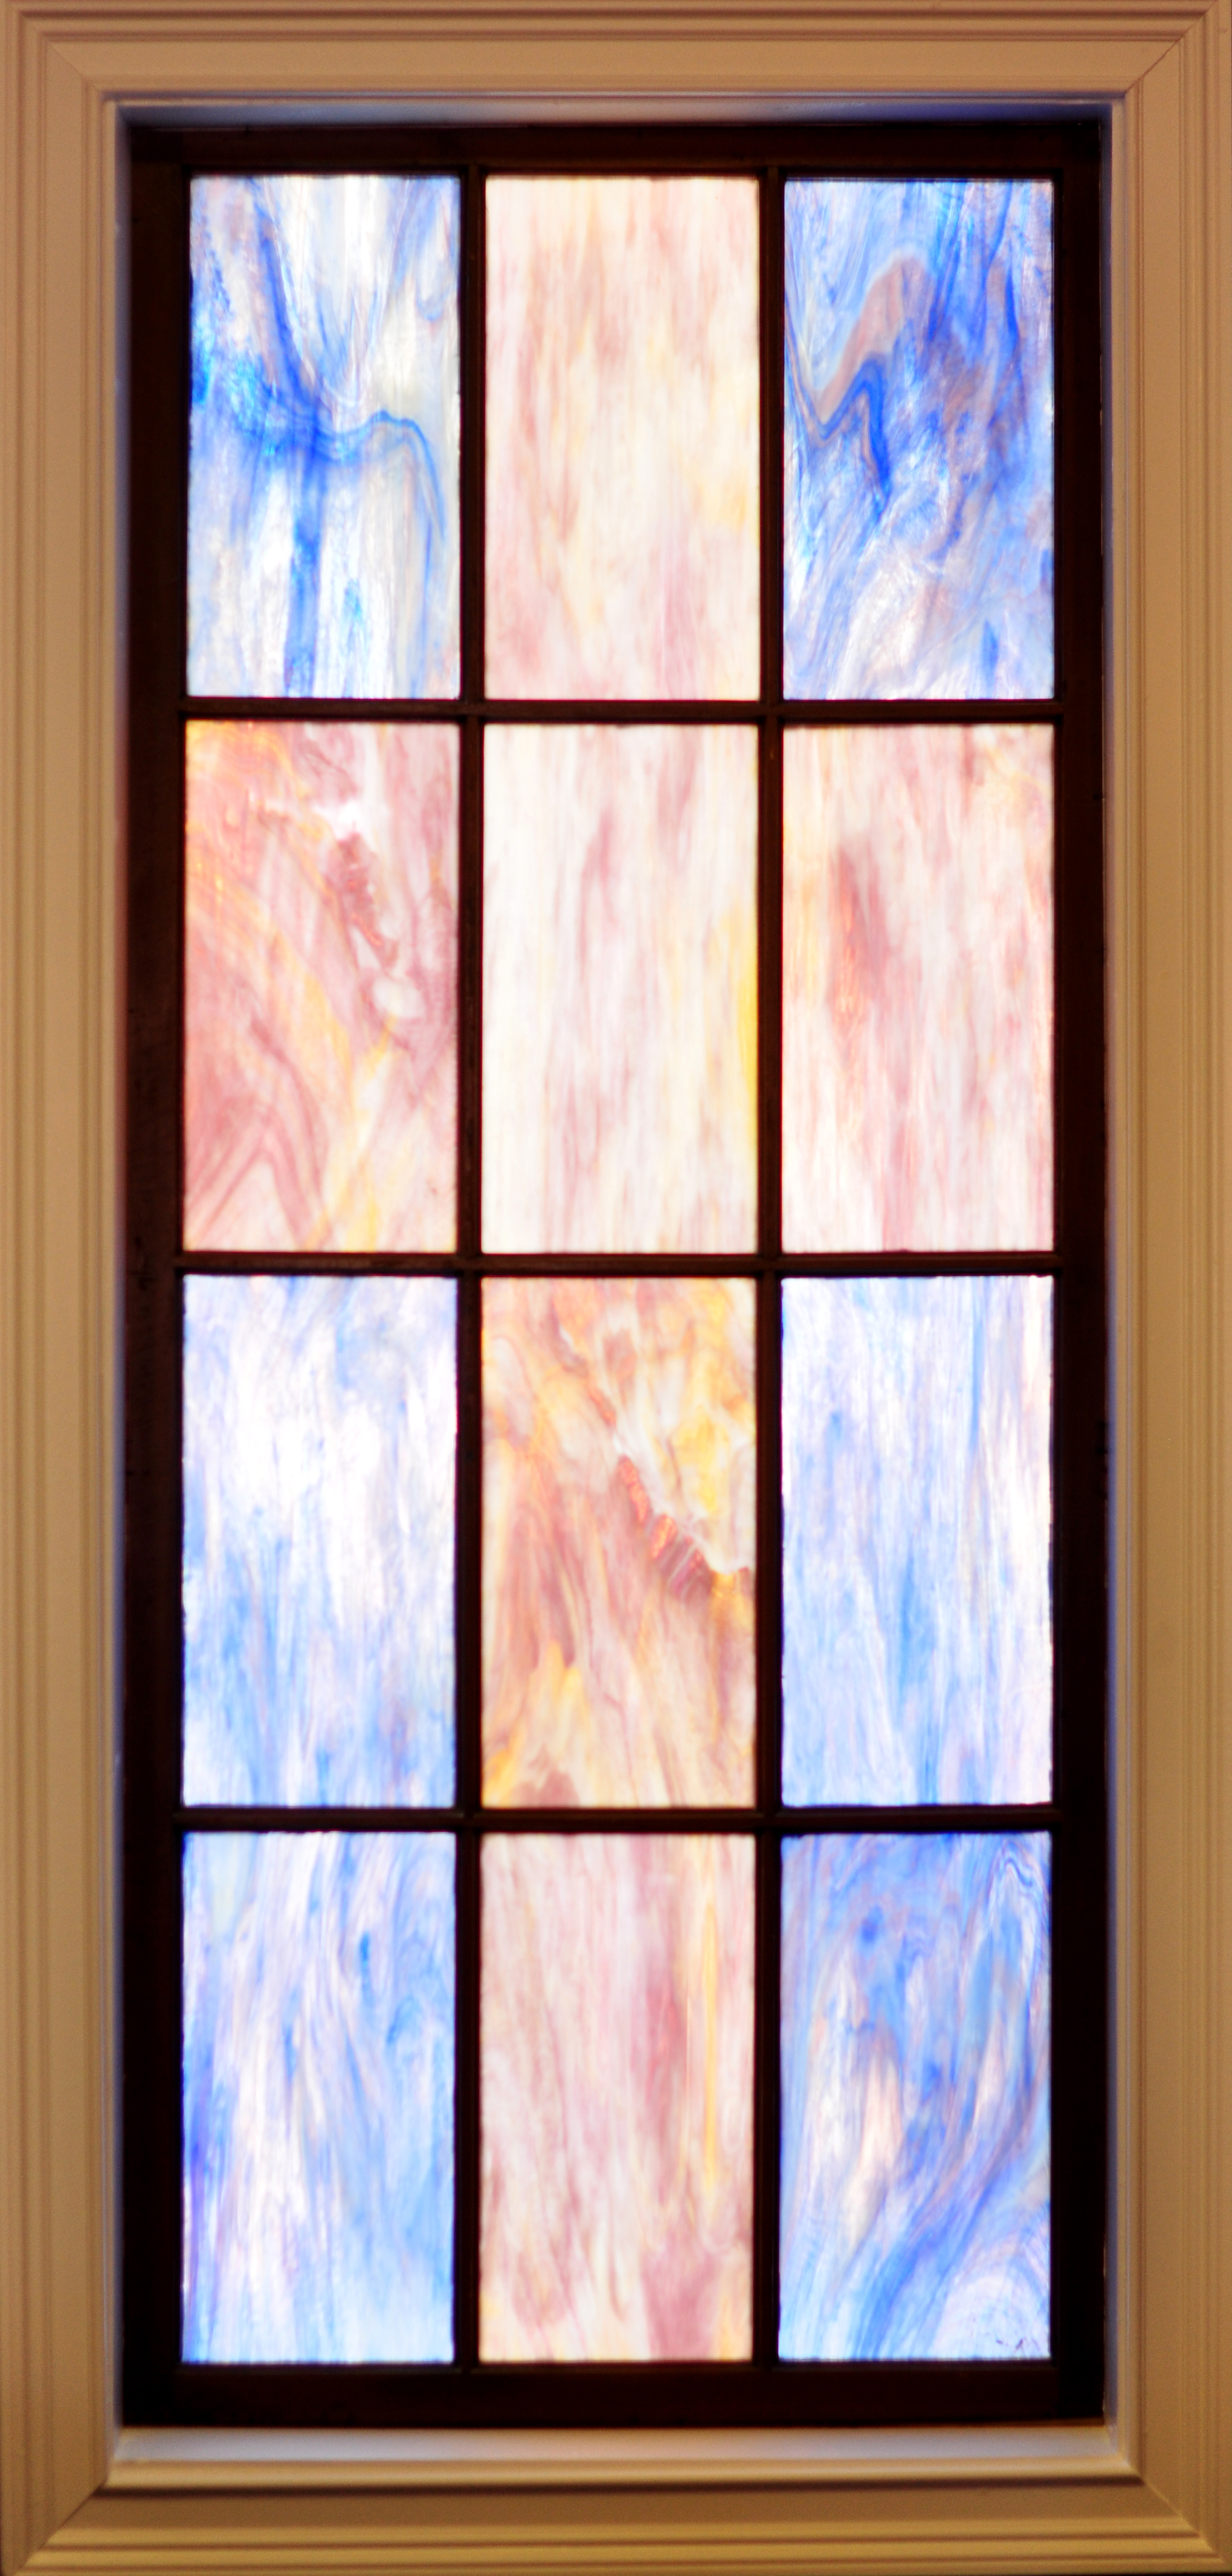 stained-glass02.jpg